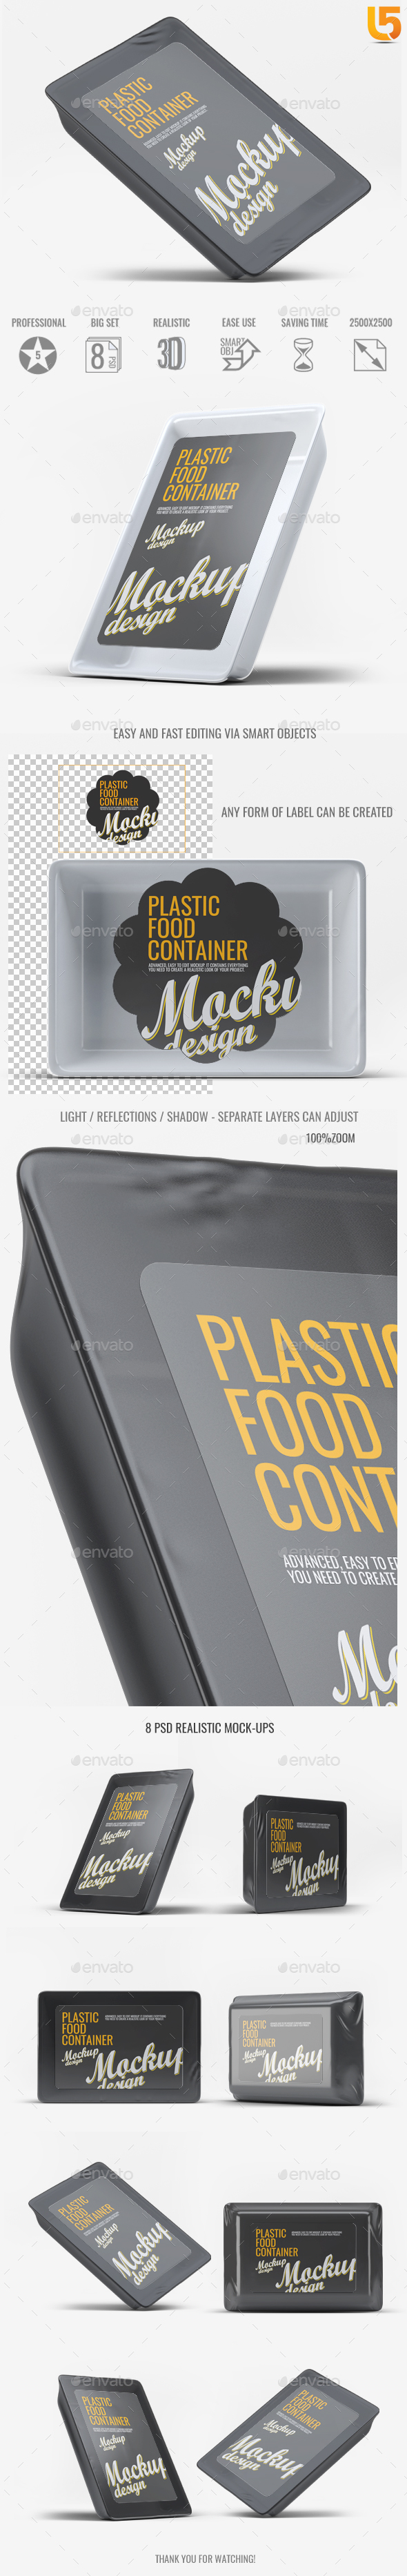 Plastic Food Tray Mock-Up - Food and Drink Packaging